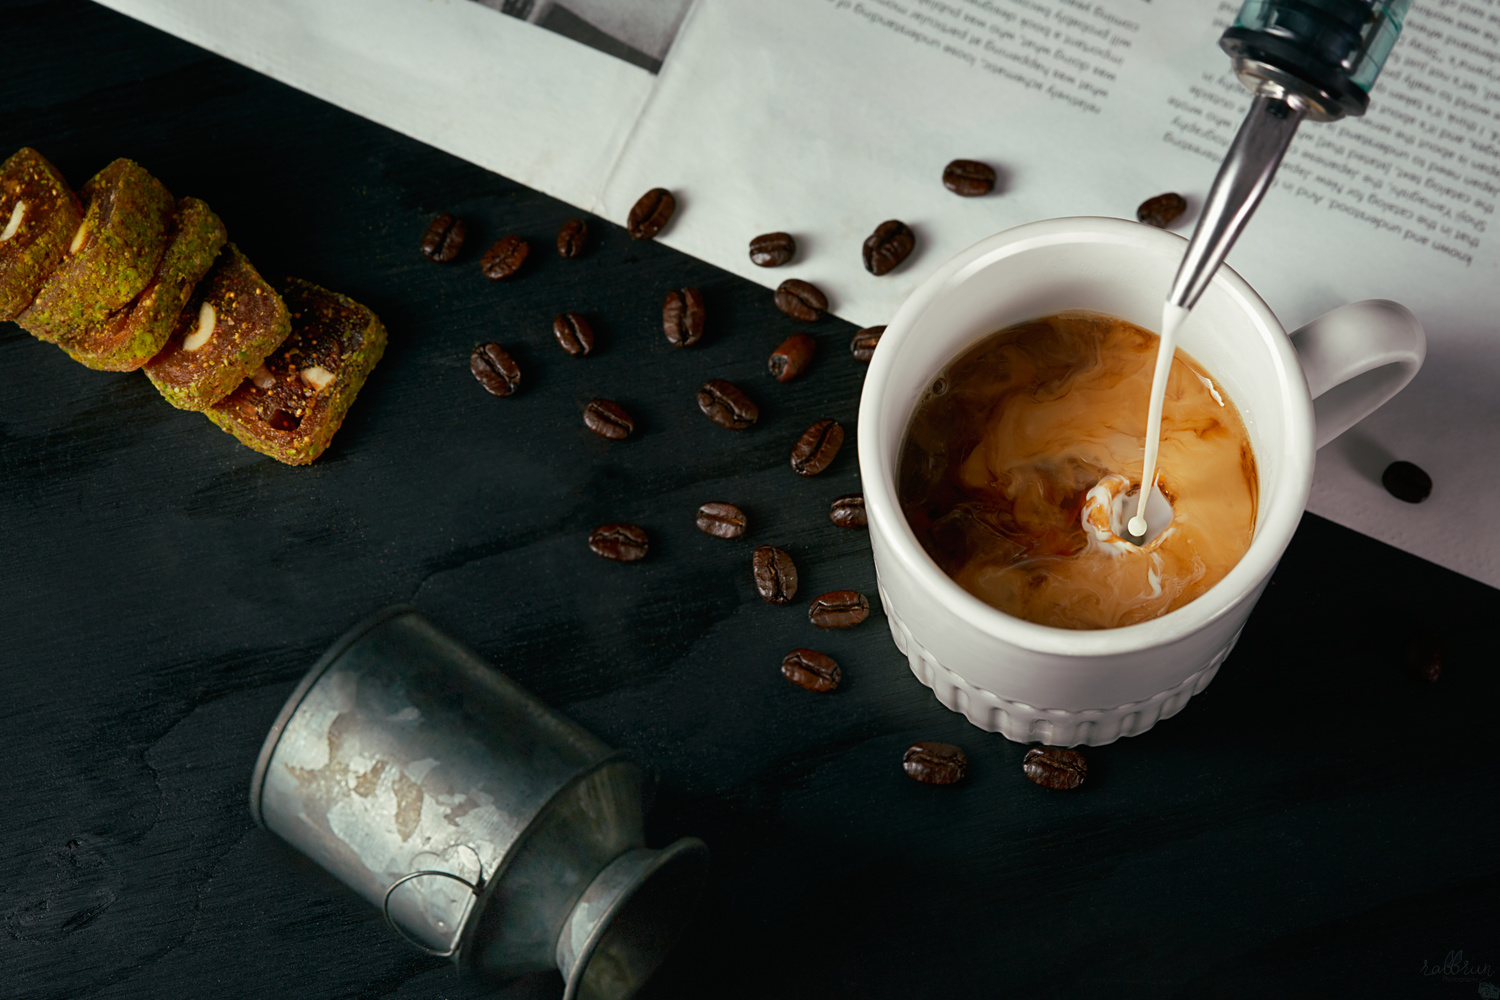 Coffee With Milk In The Morning by Sergey Sinin